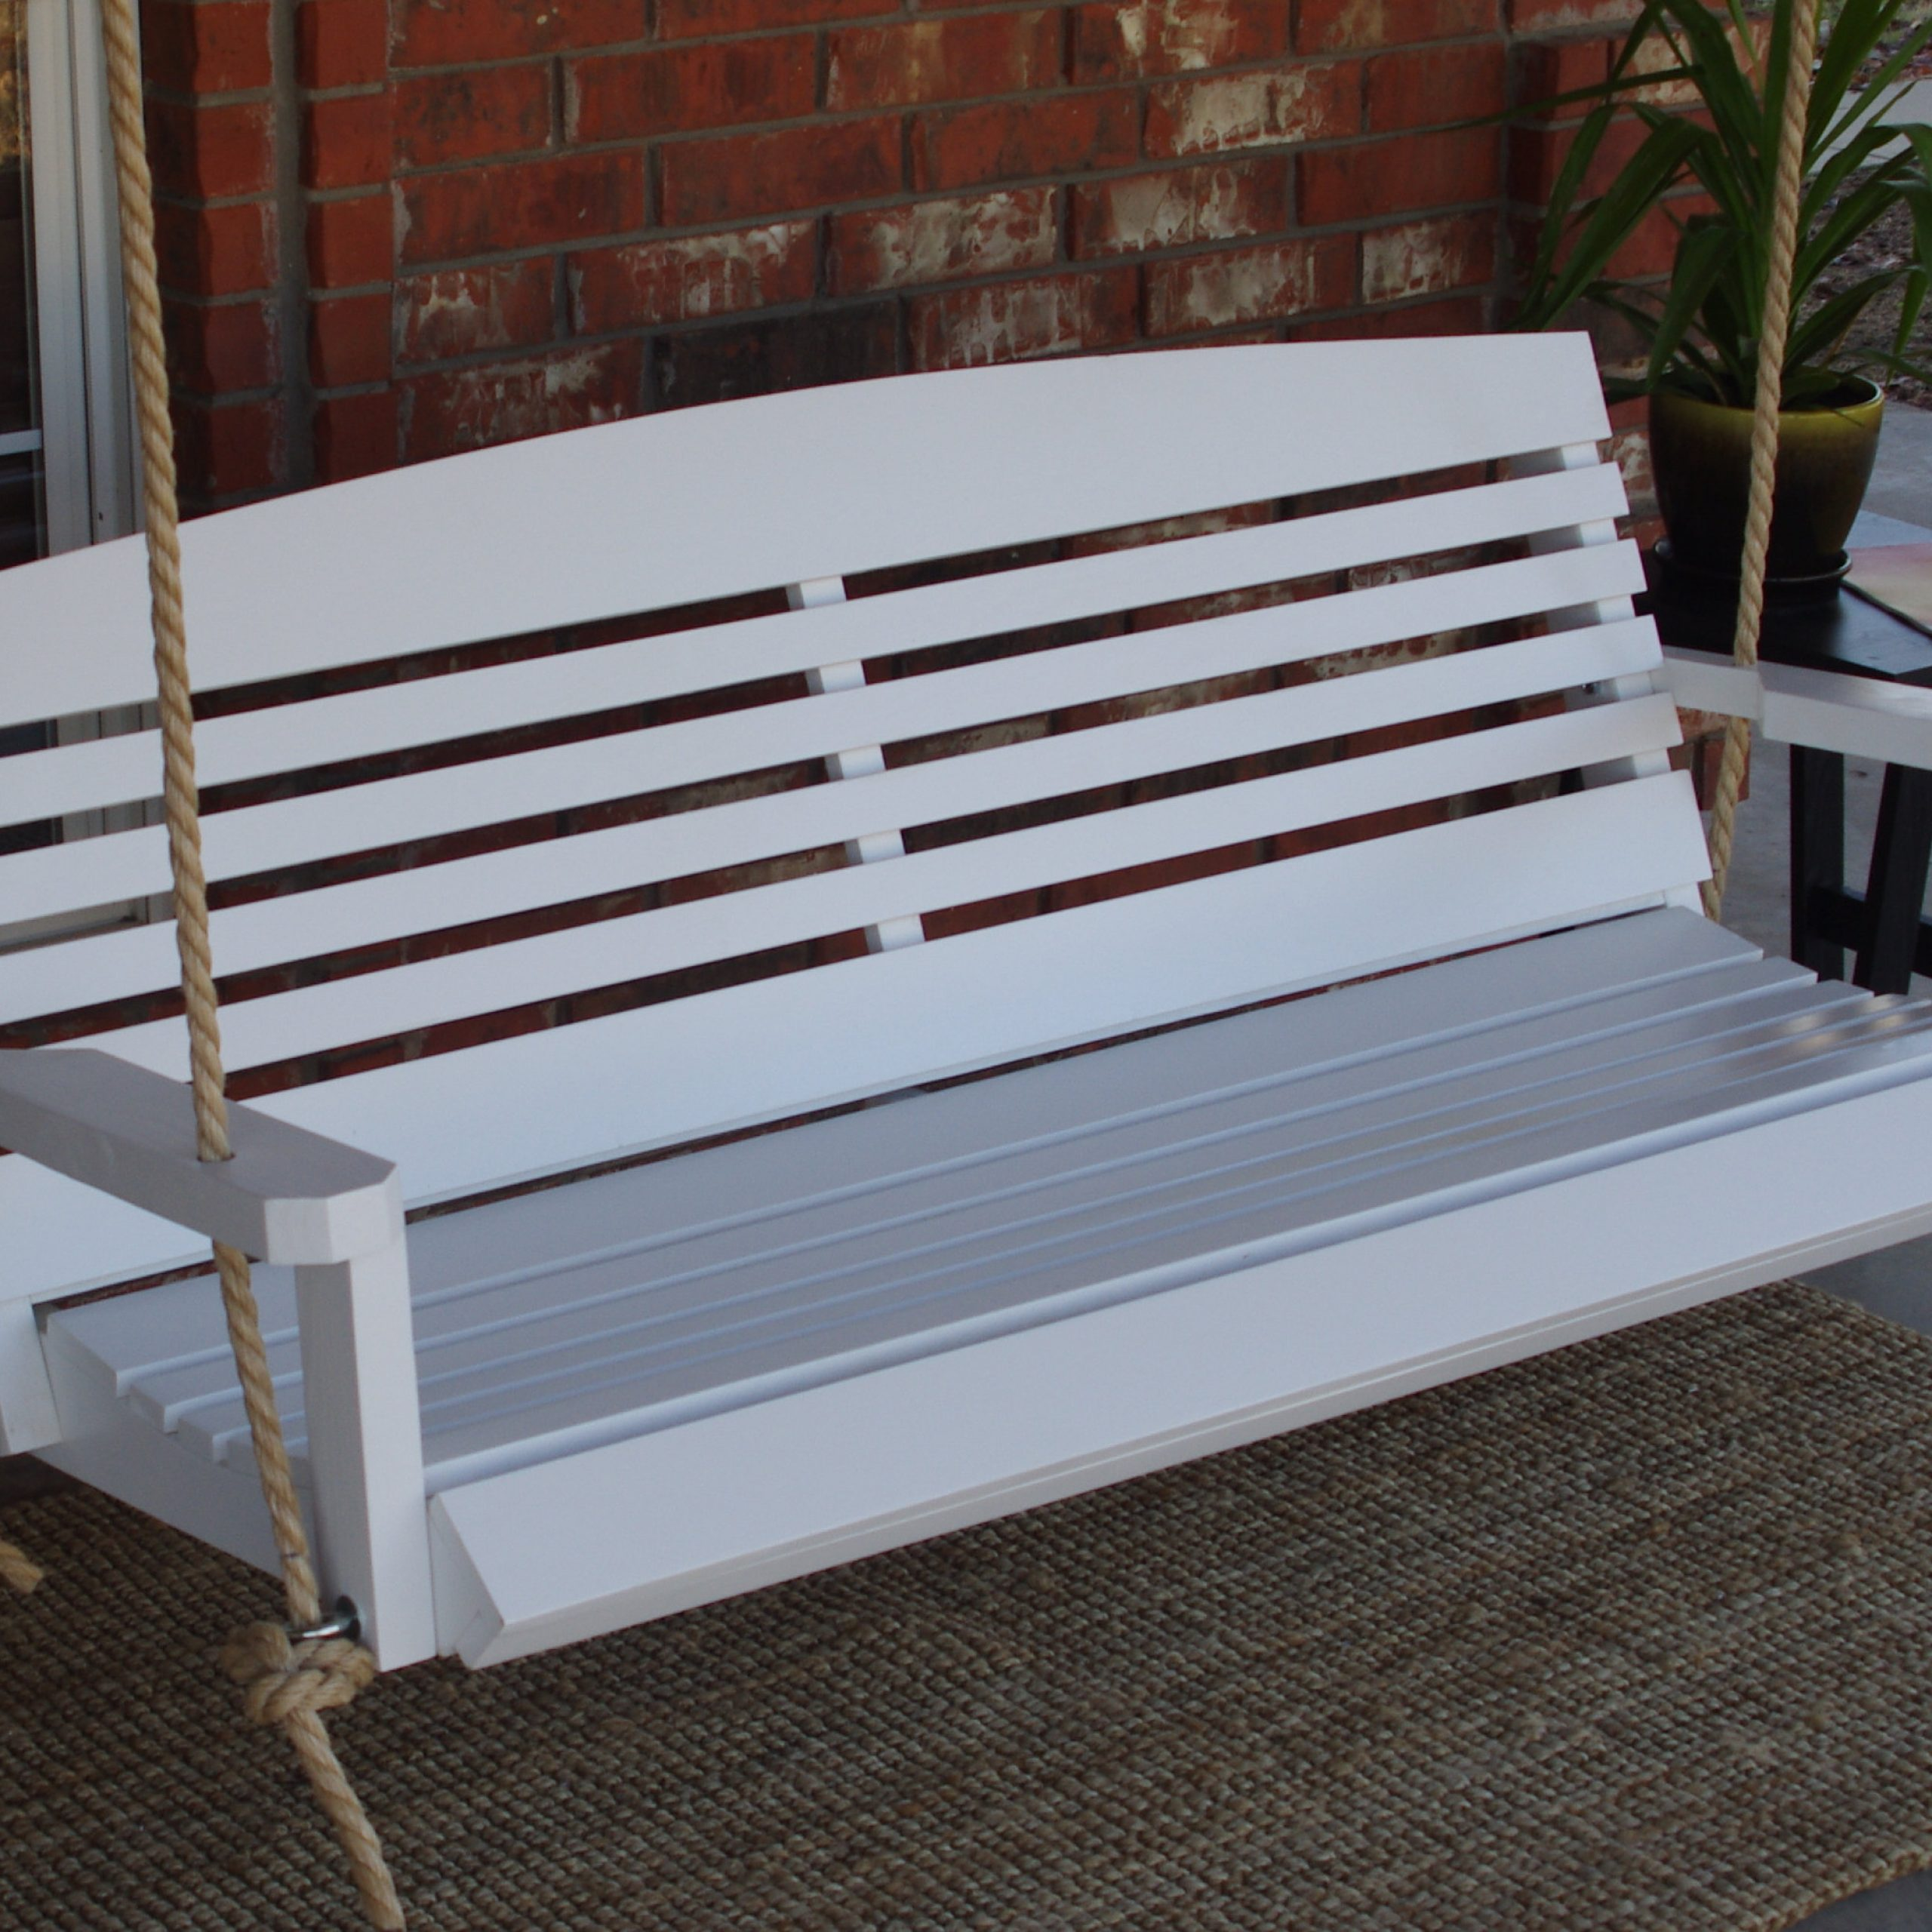 Widely Used 5 Ft Cedar Swings With Springs Within Brand New 5 Foot Painted American Style White Porch Swing – With Hanging Chain Or Rope – Free Shipping (View 11 of 25)